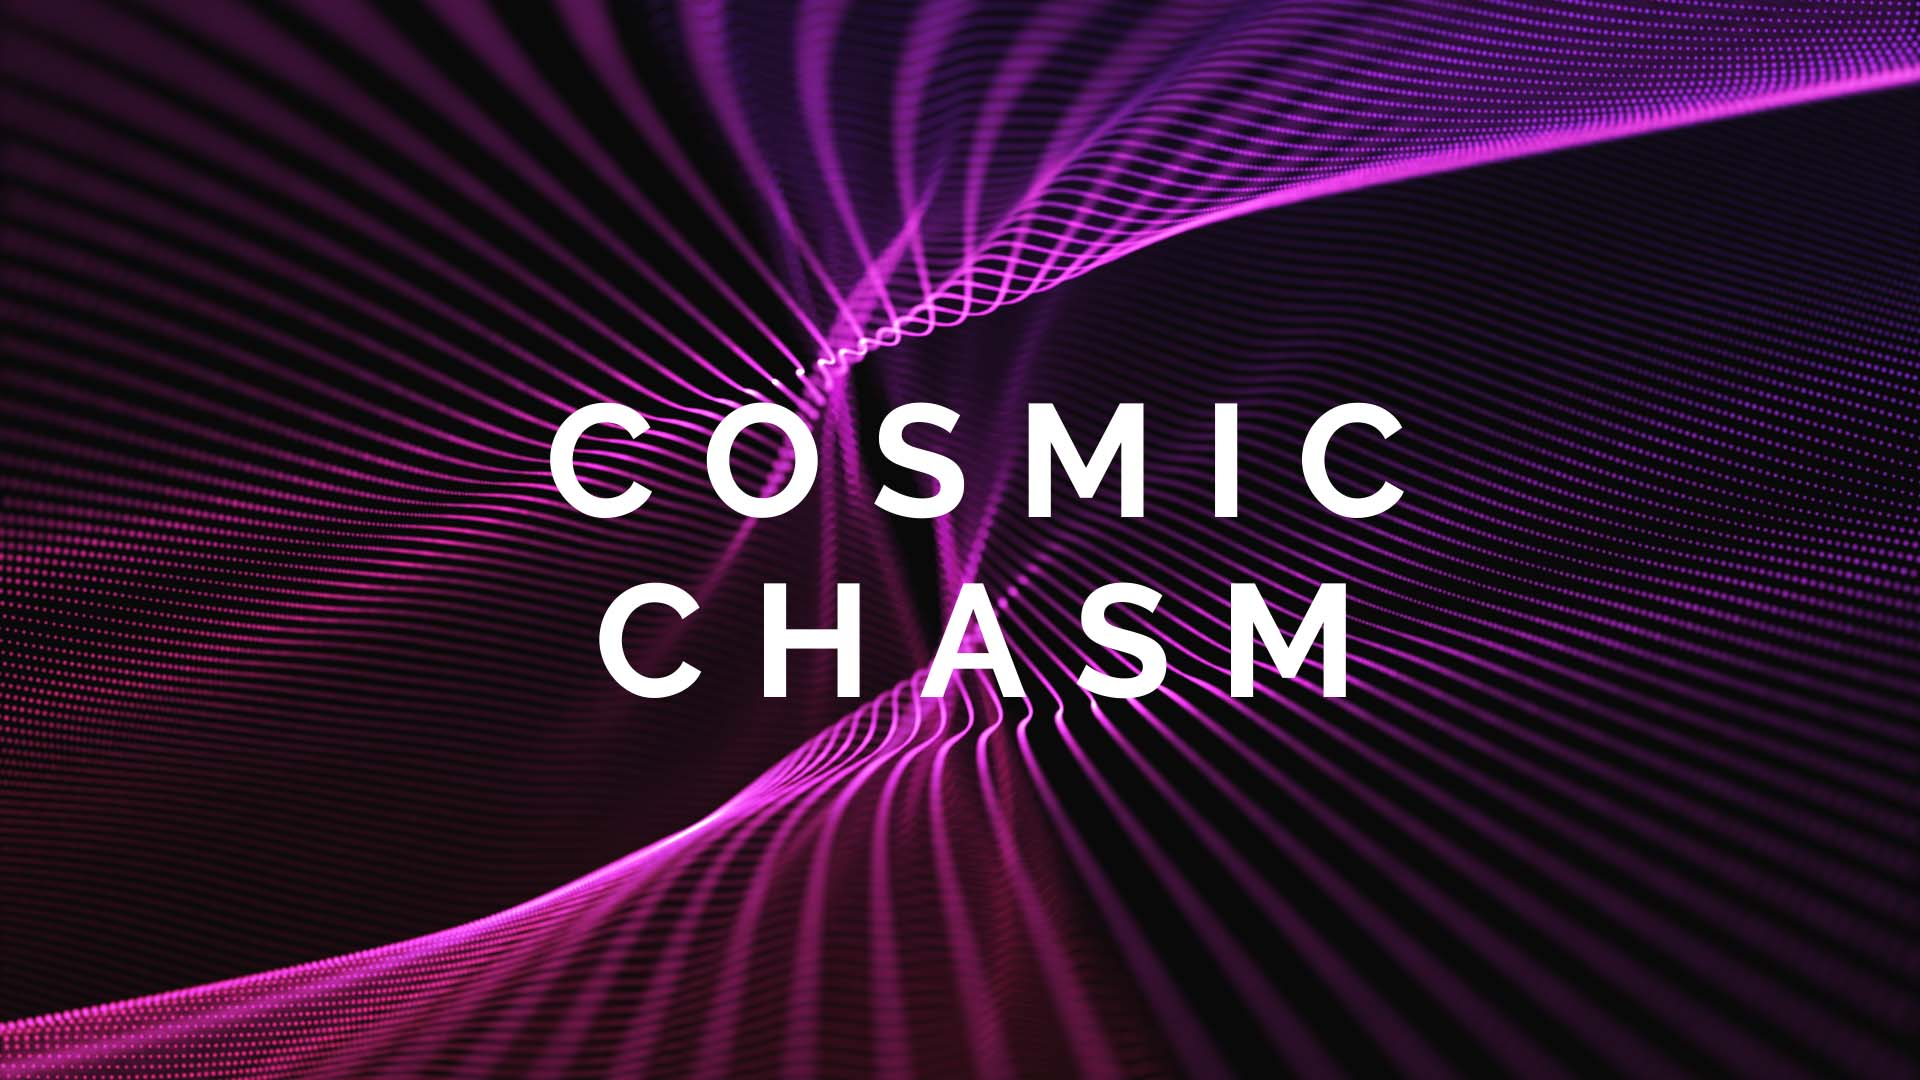 THE COMFORT OF THE COSMIC CHASM